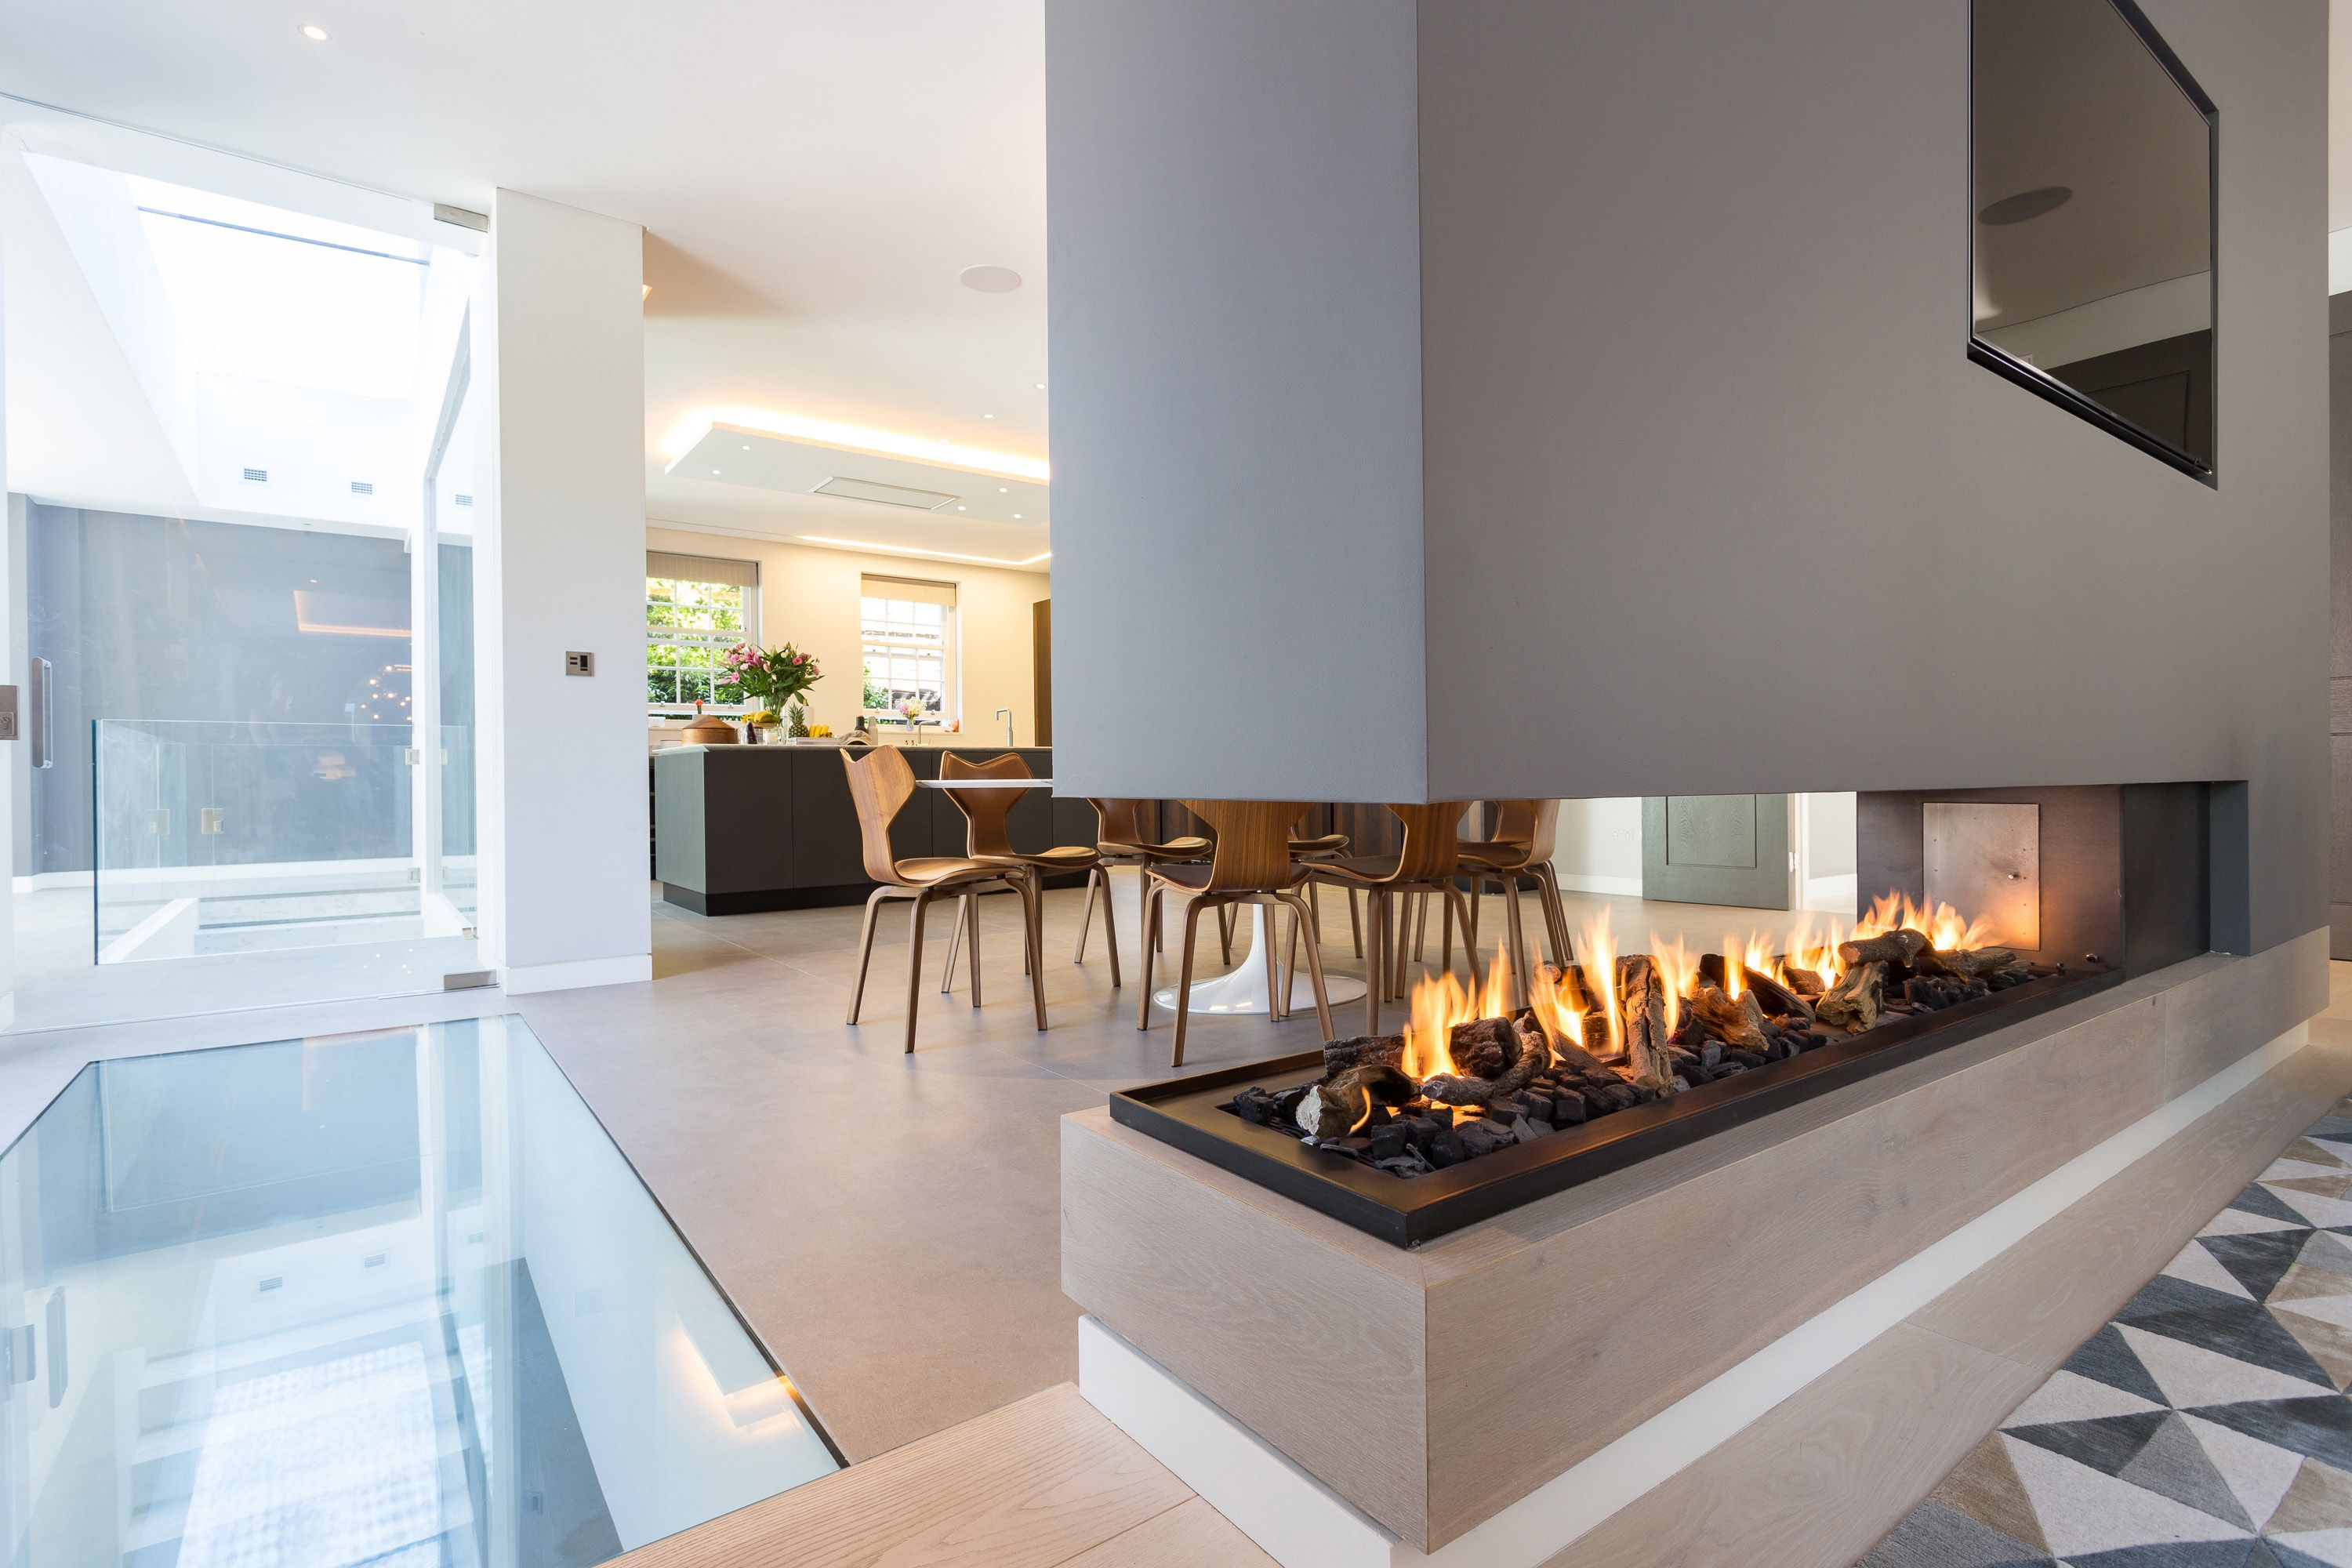 3 Sided Fireplace Inspirational This Stunning Three Sided Gas Fireplace forms Part Of A Room